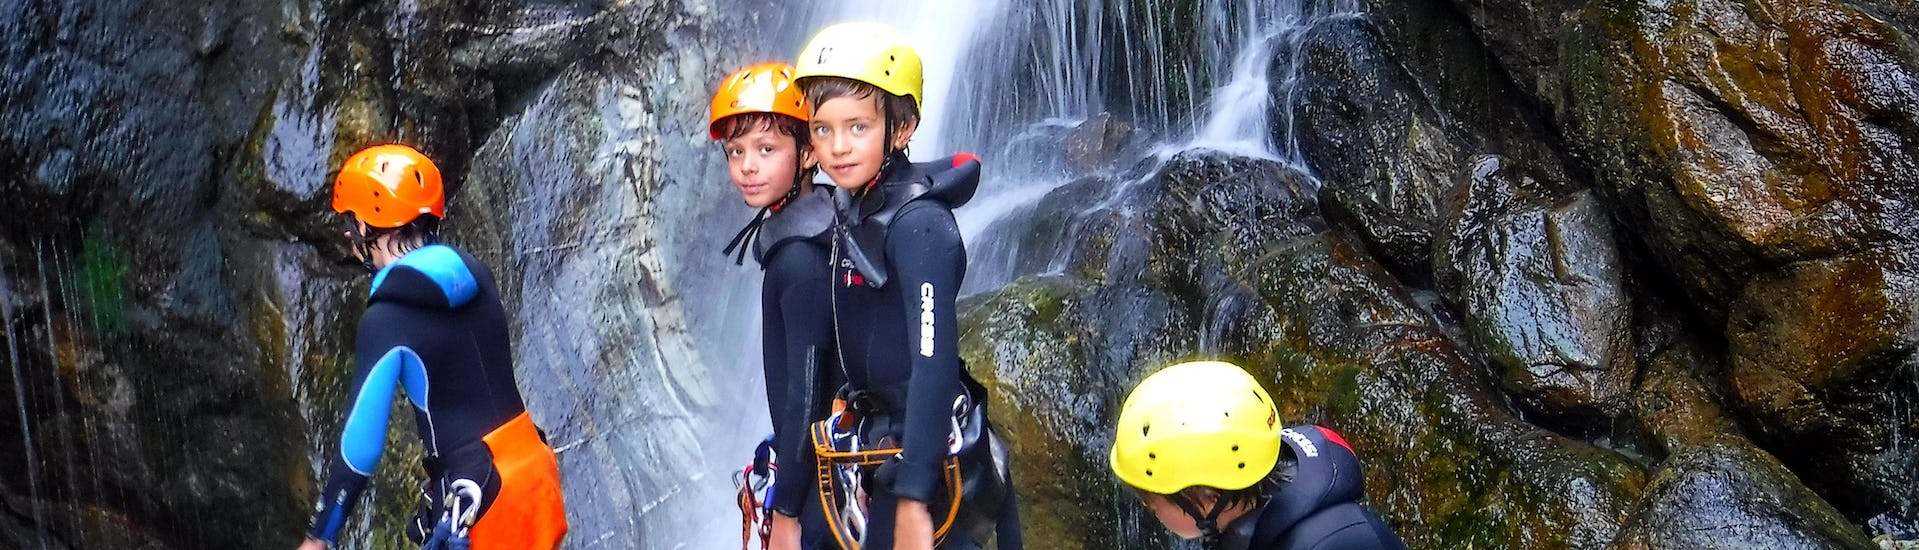 canyoning-in-the-chalamy-for-families-canyoning-valle-d-aosta-hero